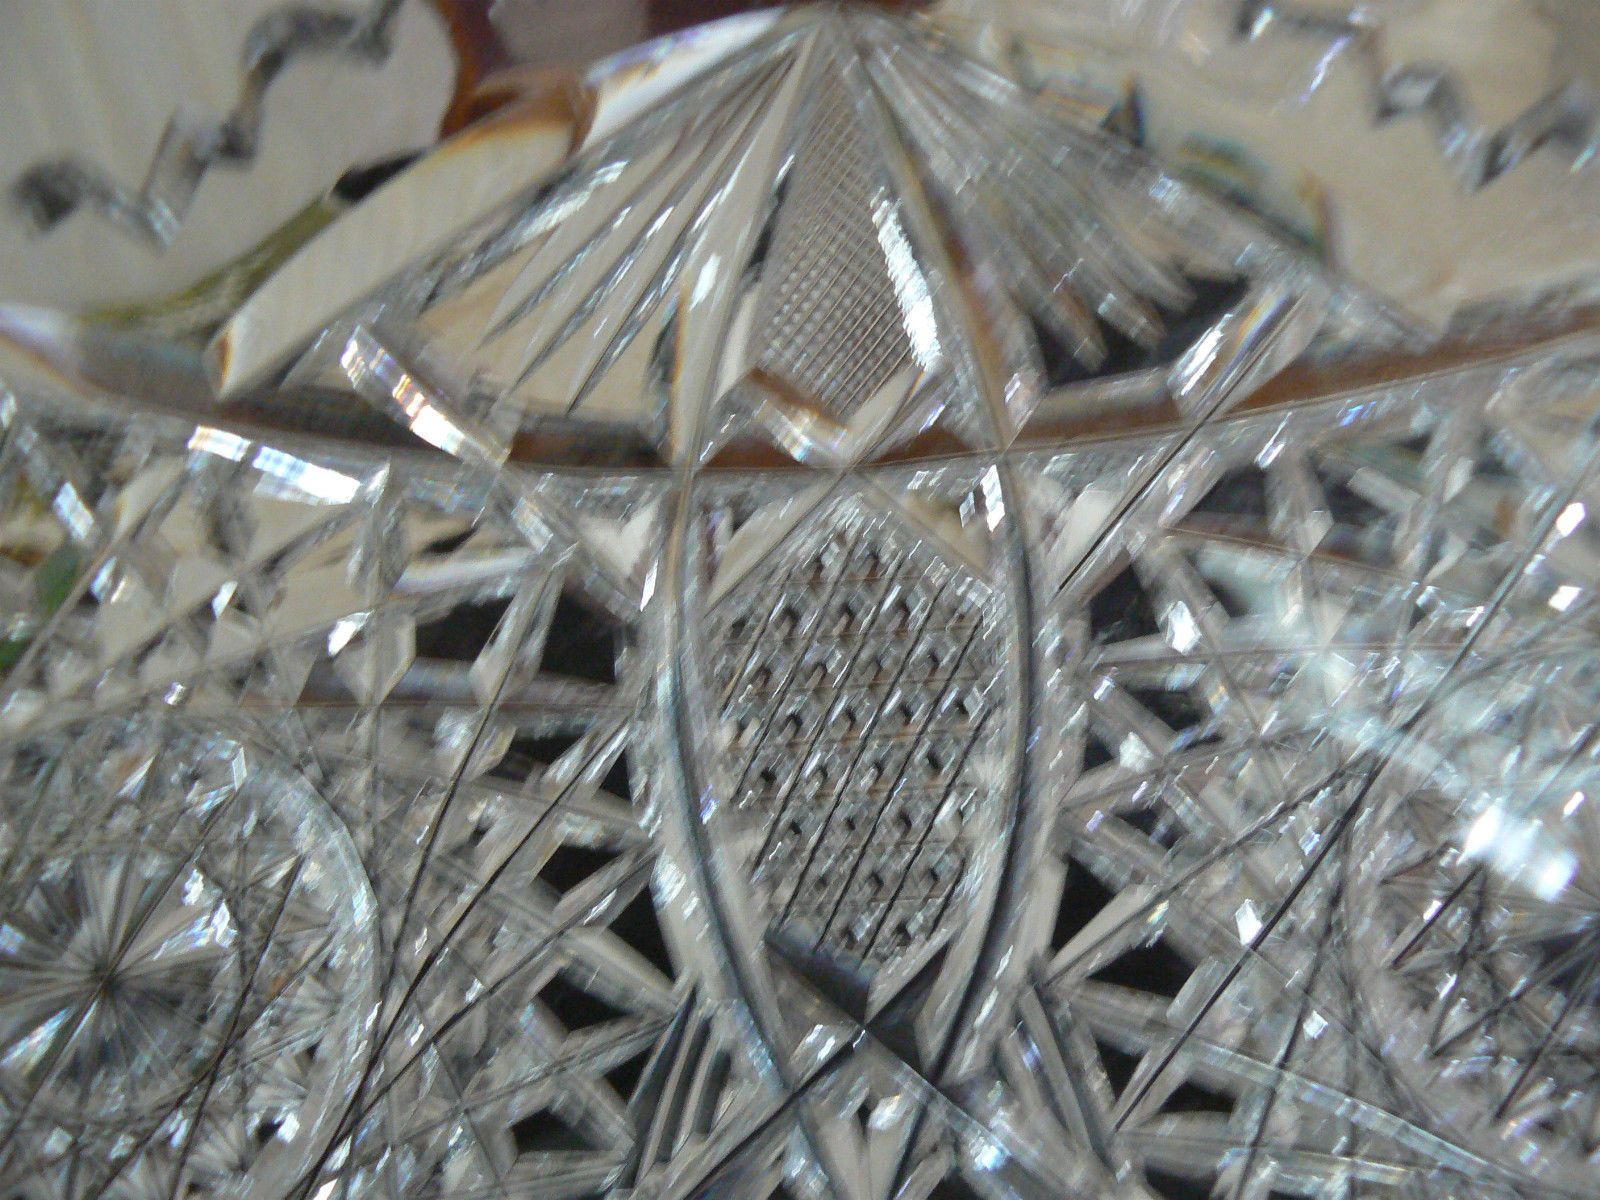 Exquisite American Brilliant Period Cut Crystal Star Diamond Straus Punch Bowl